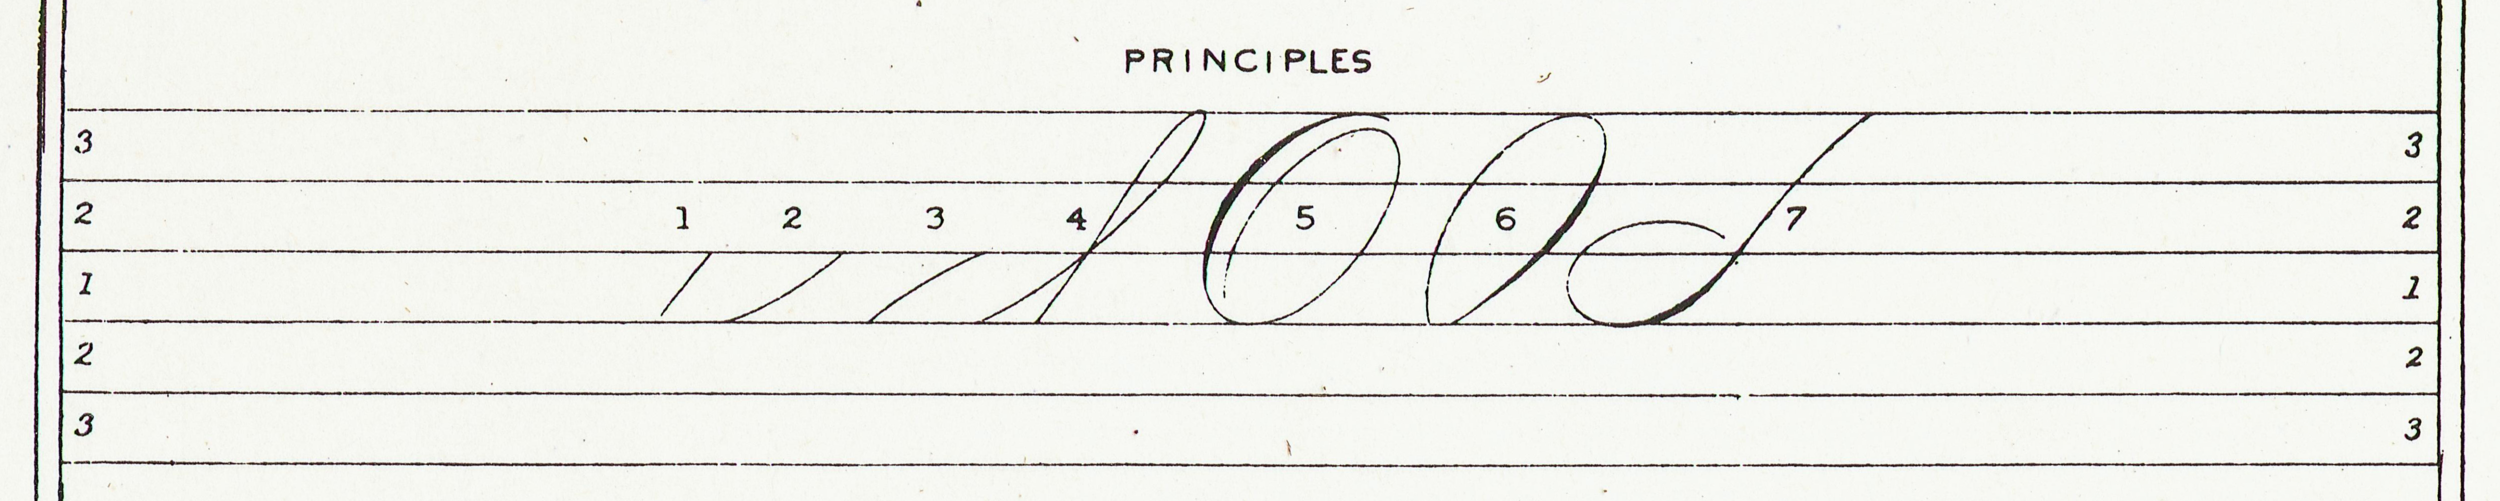 Spencerian Principles. Source:   New Spencerian Compendium   (1879), Plate II.